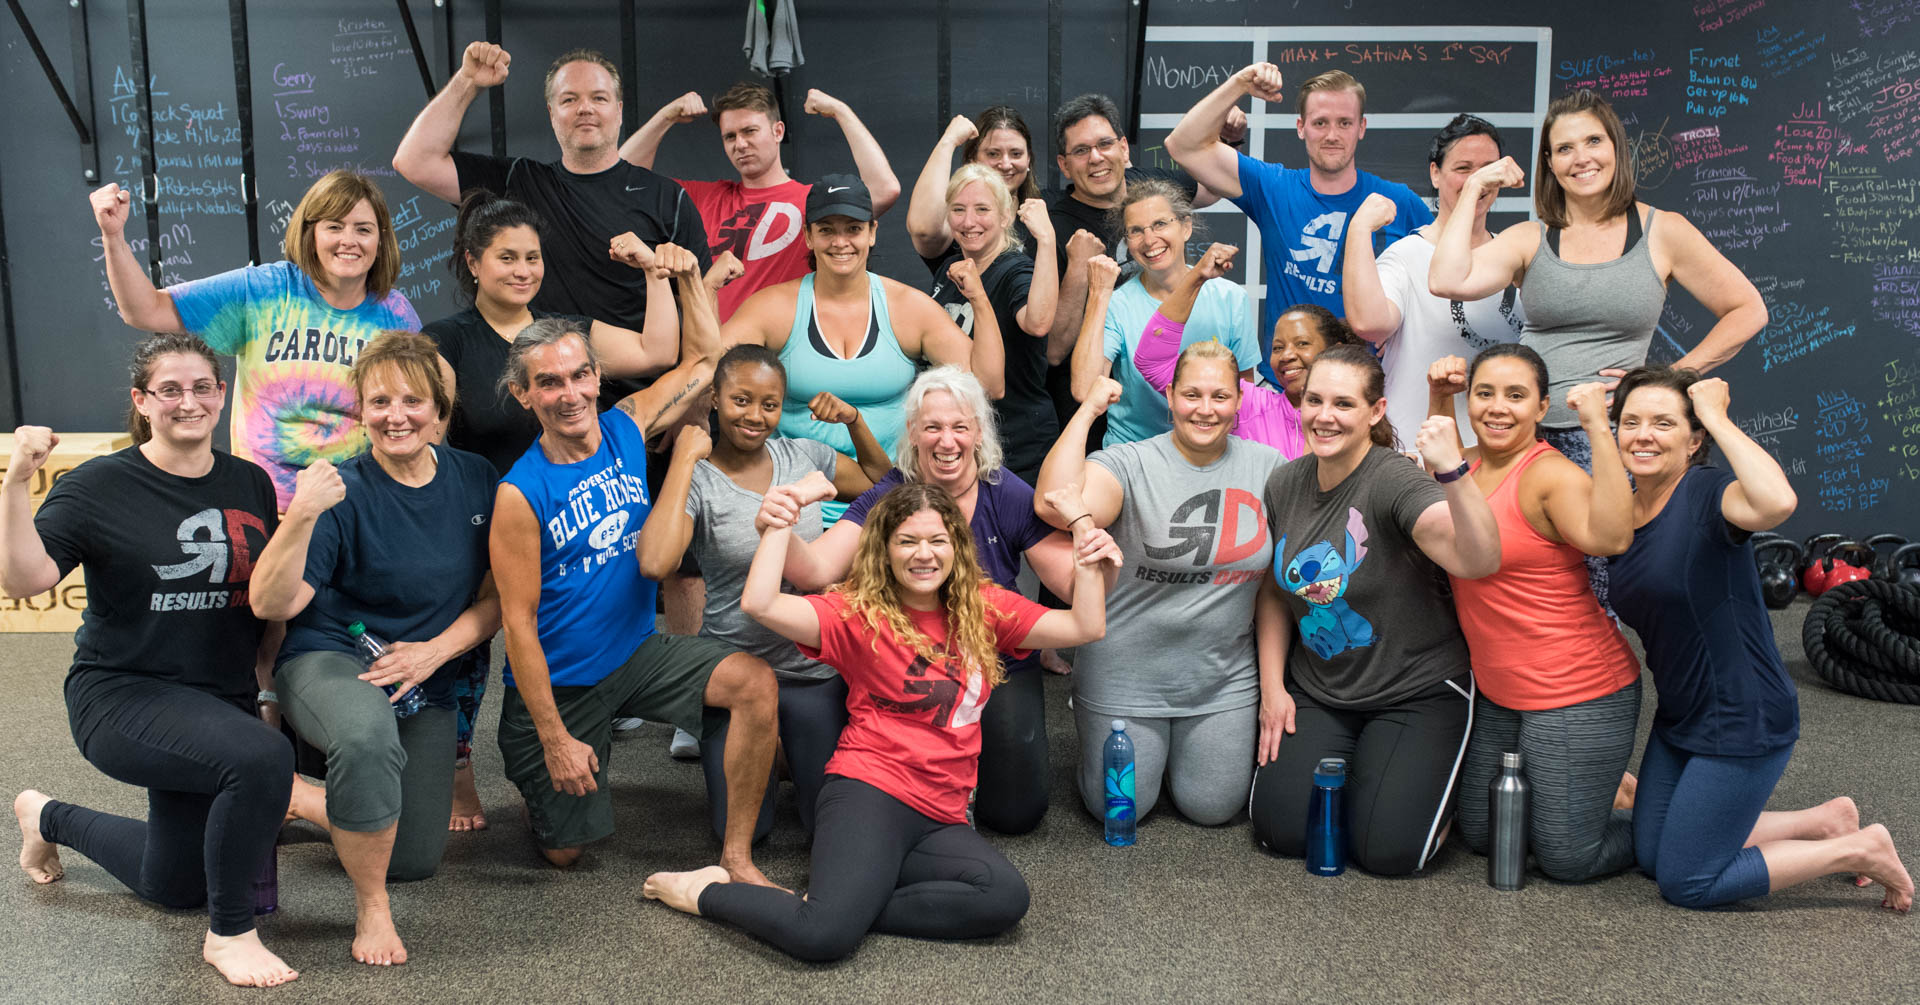 team pic back from perform better facebook ad.jpg